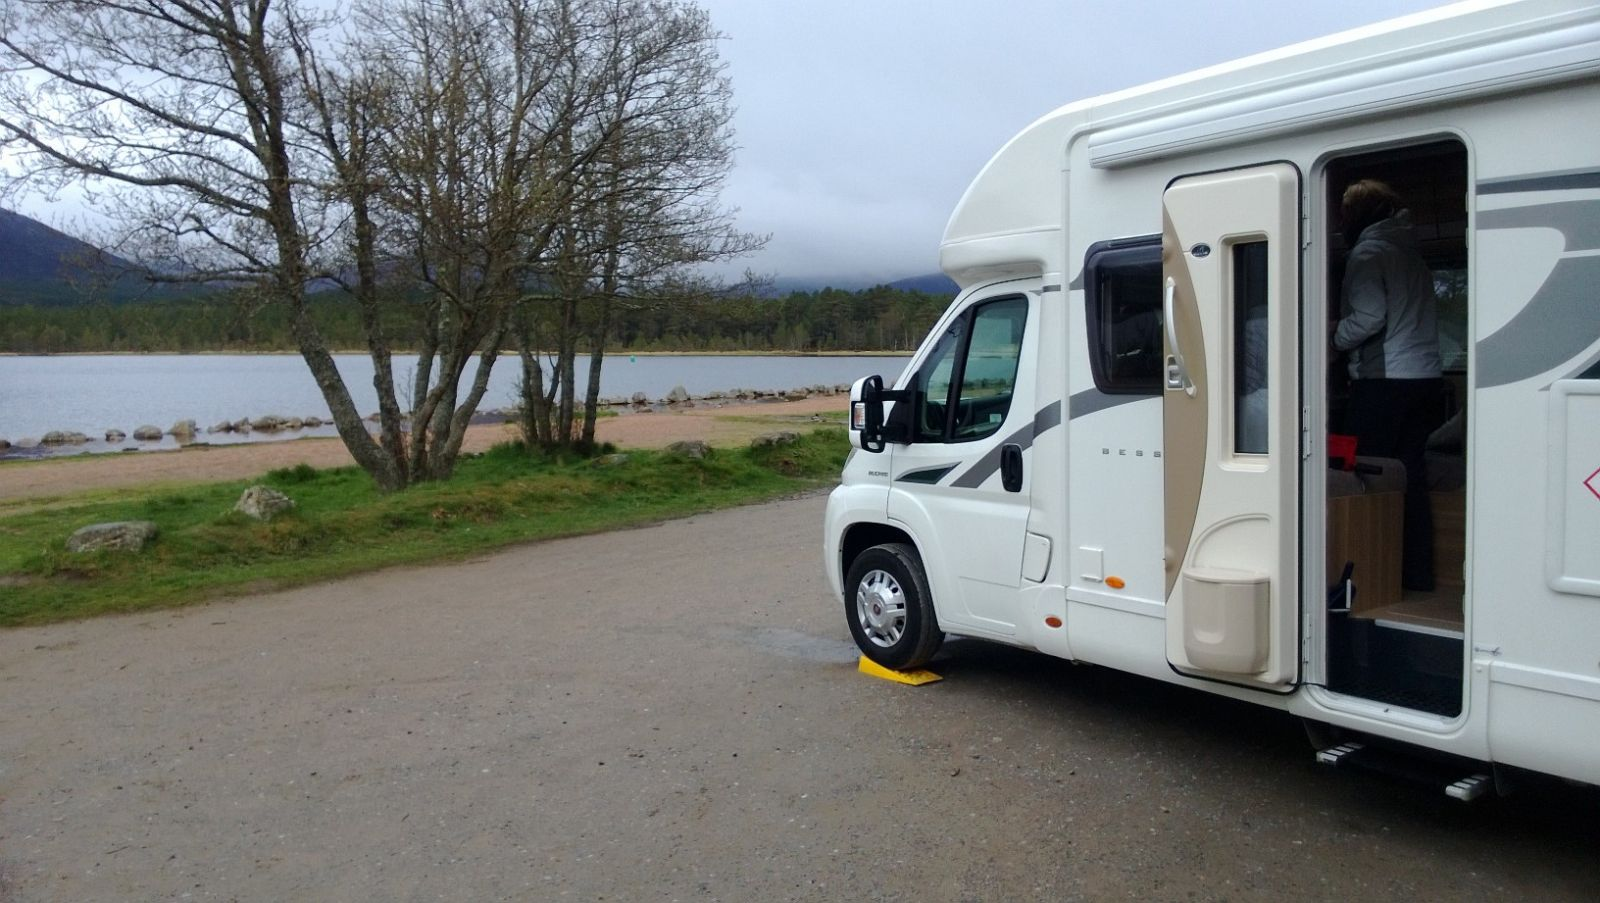 Motorhome parked by banks of loch